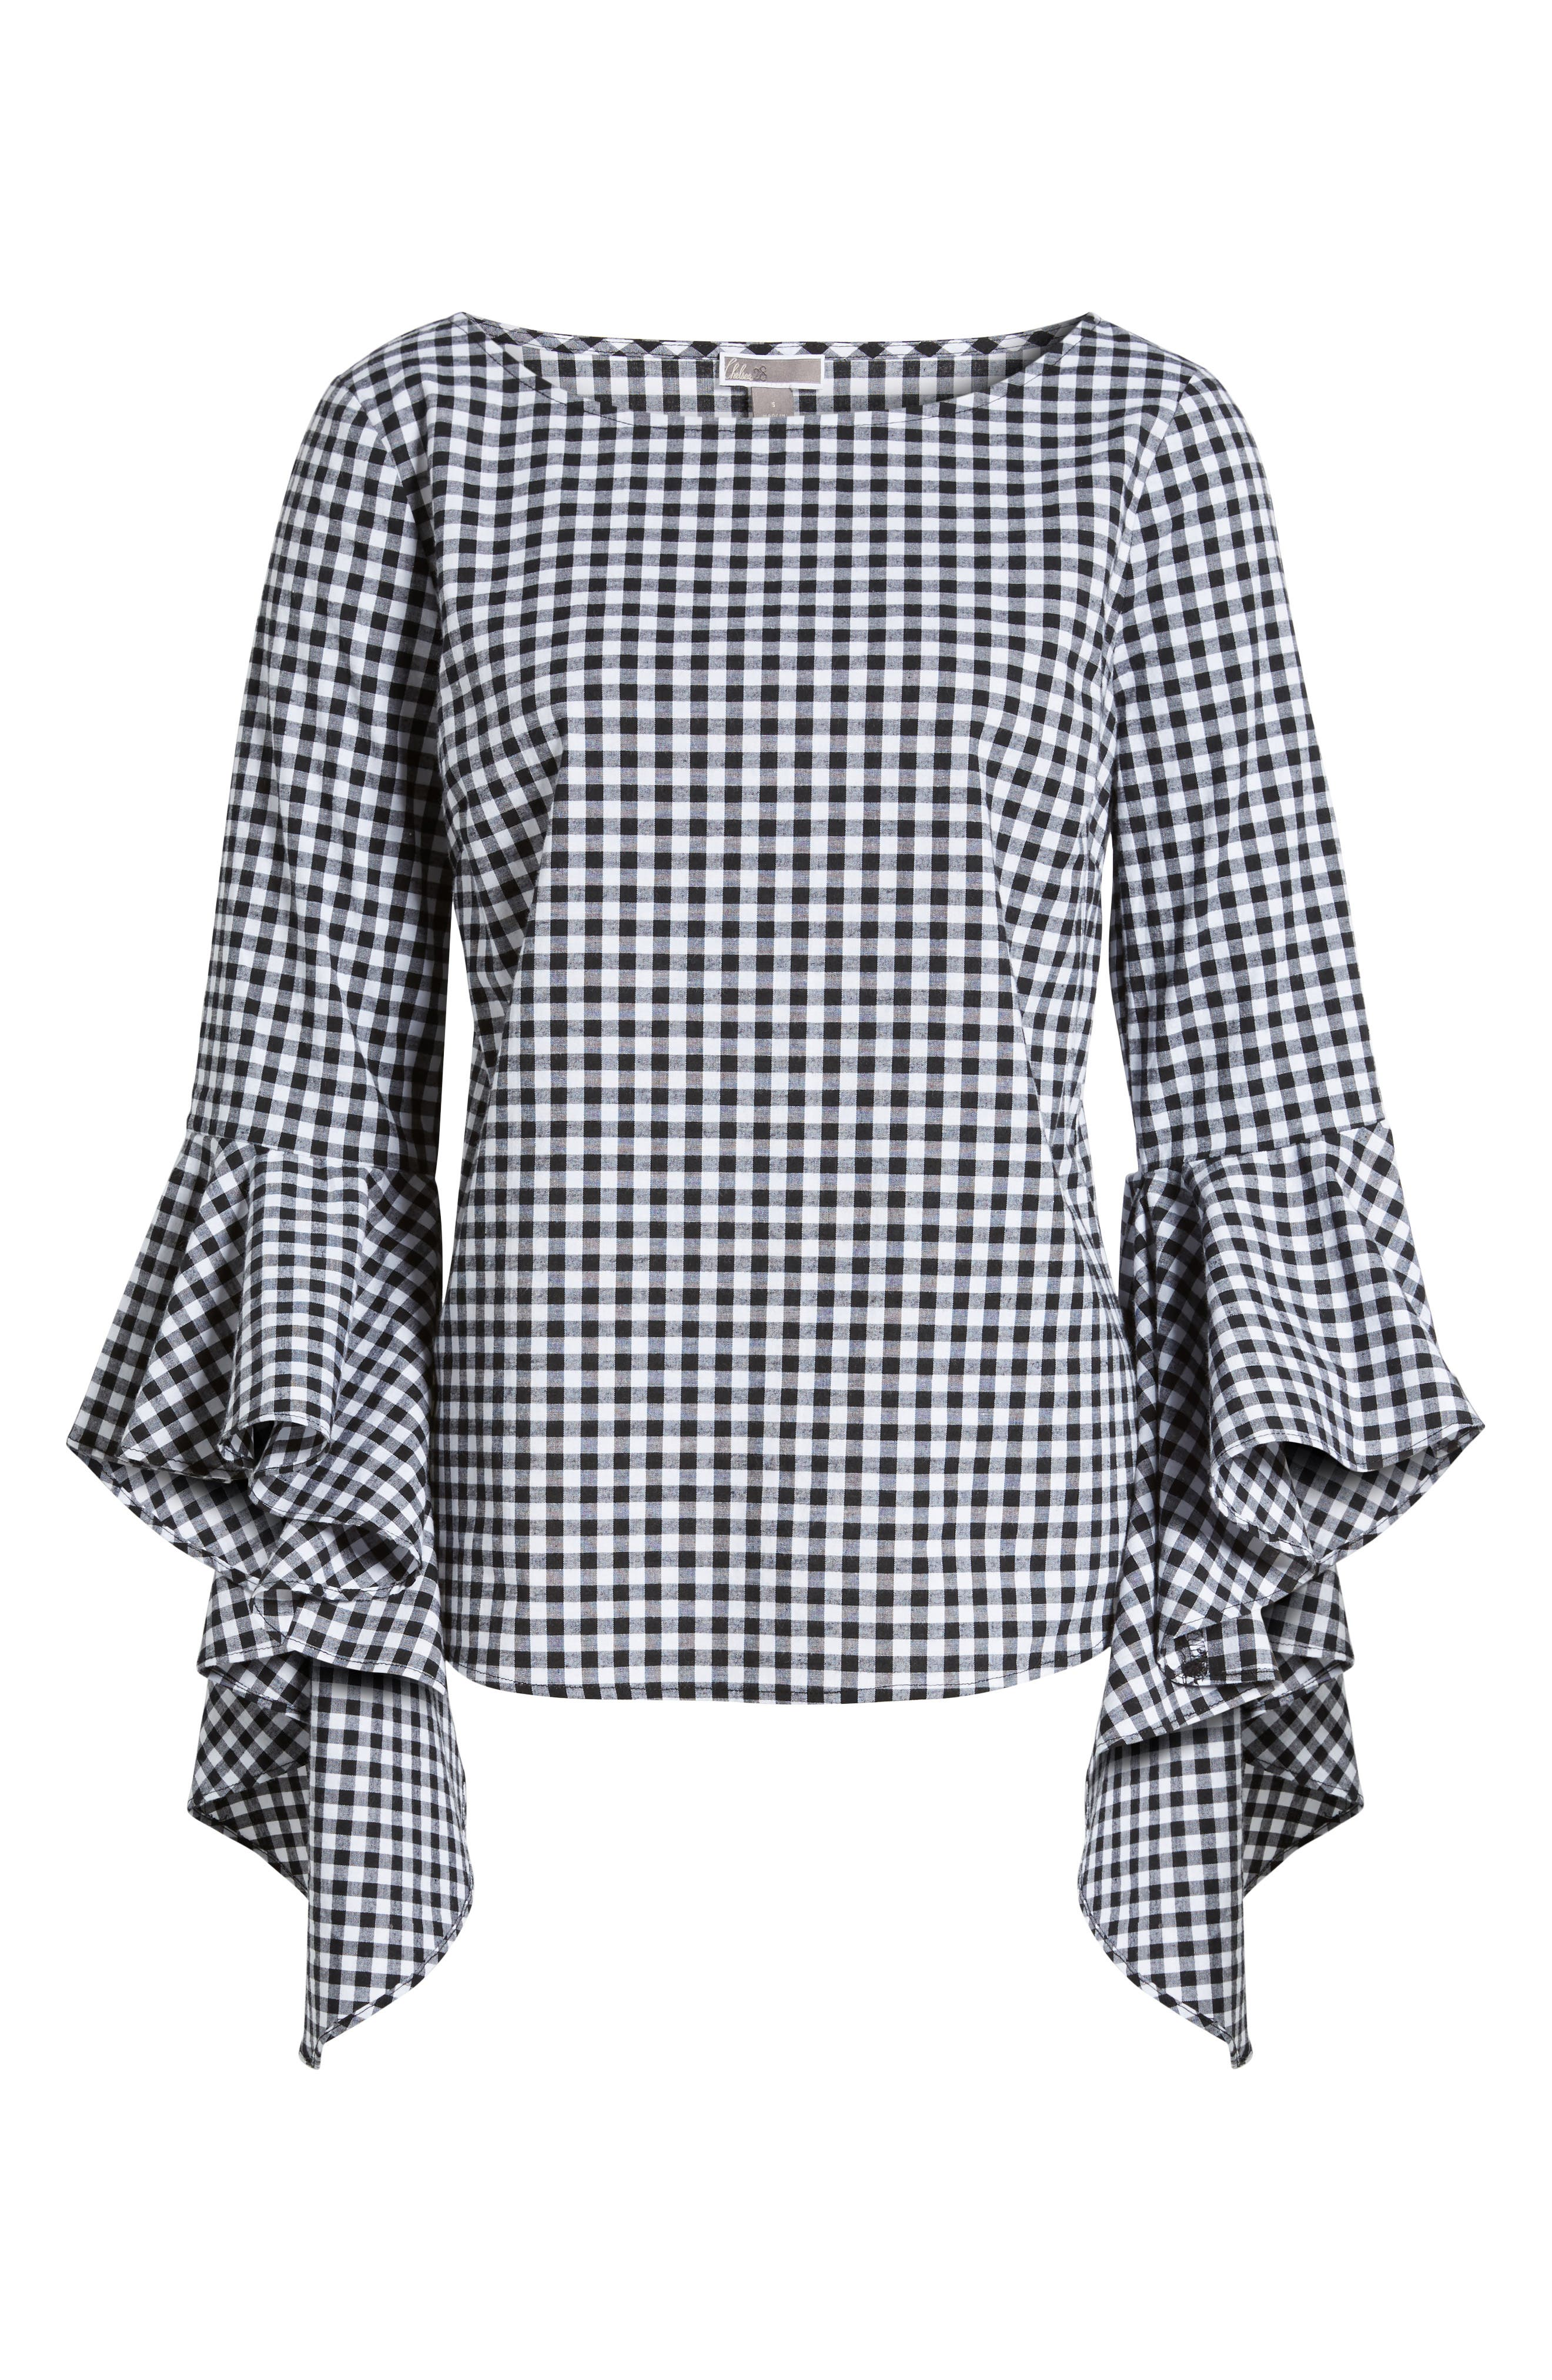 Gingham Ruffle Sleeve Top,                             Alternate thumbnail 6, color,                             Black- White Gingham